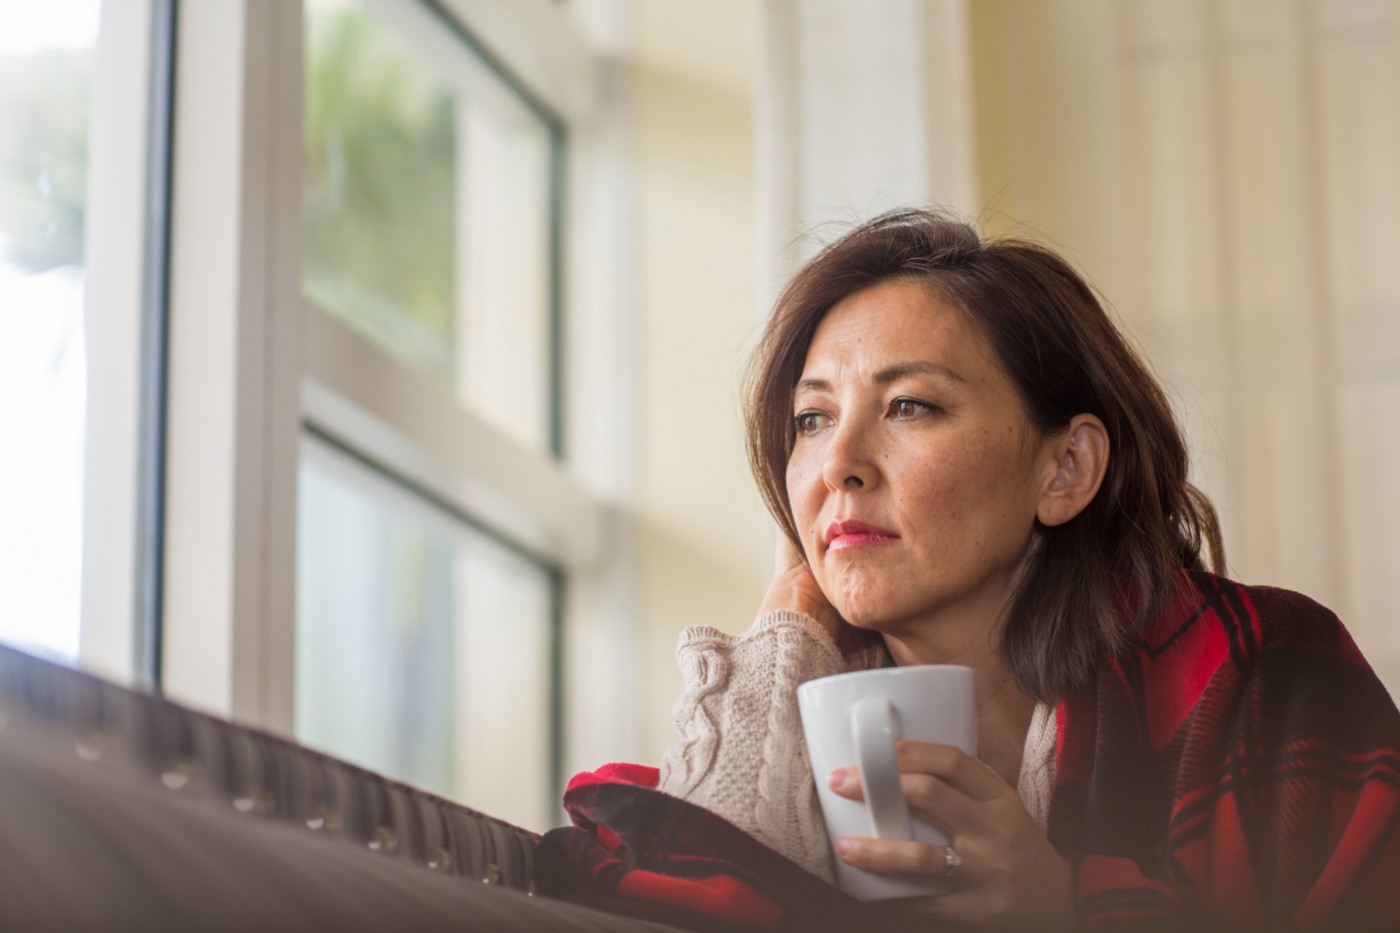 A woman holding a cup and looking out the window thoughtfully.